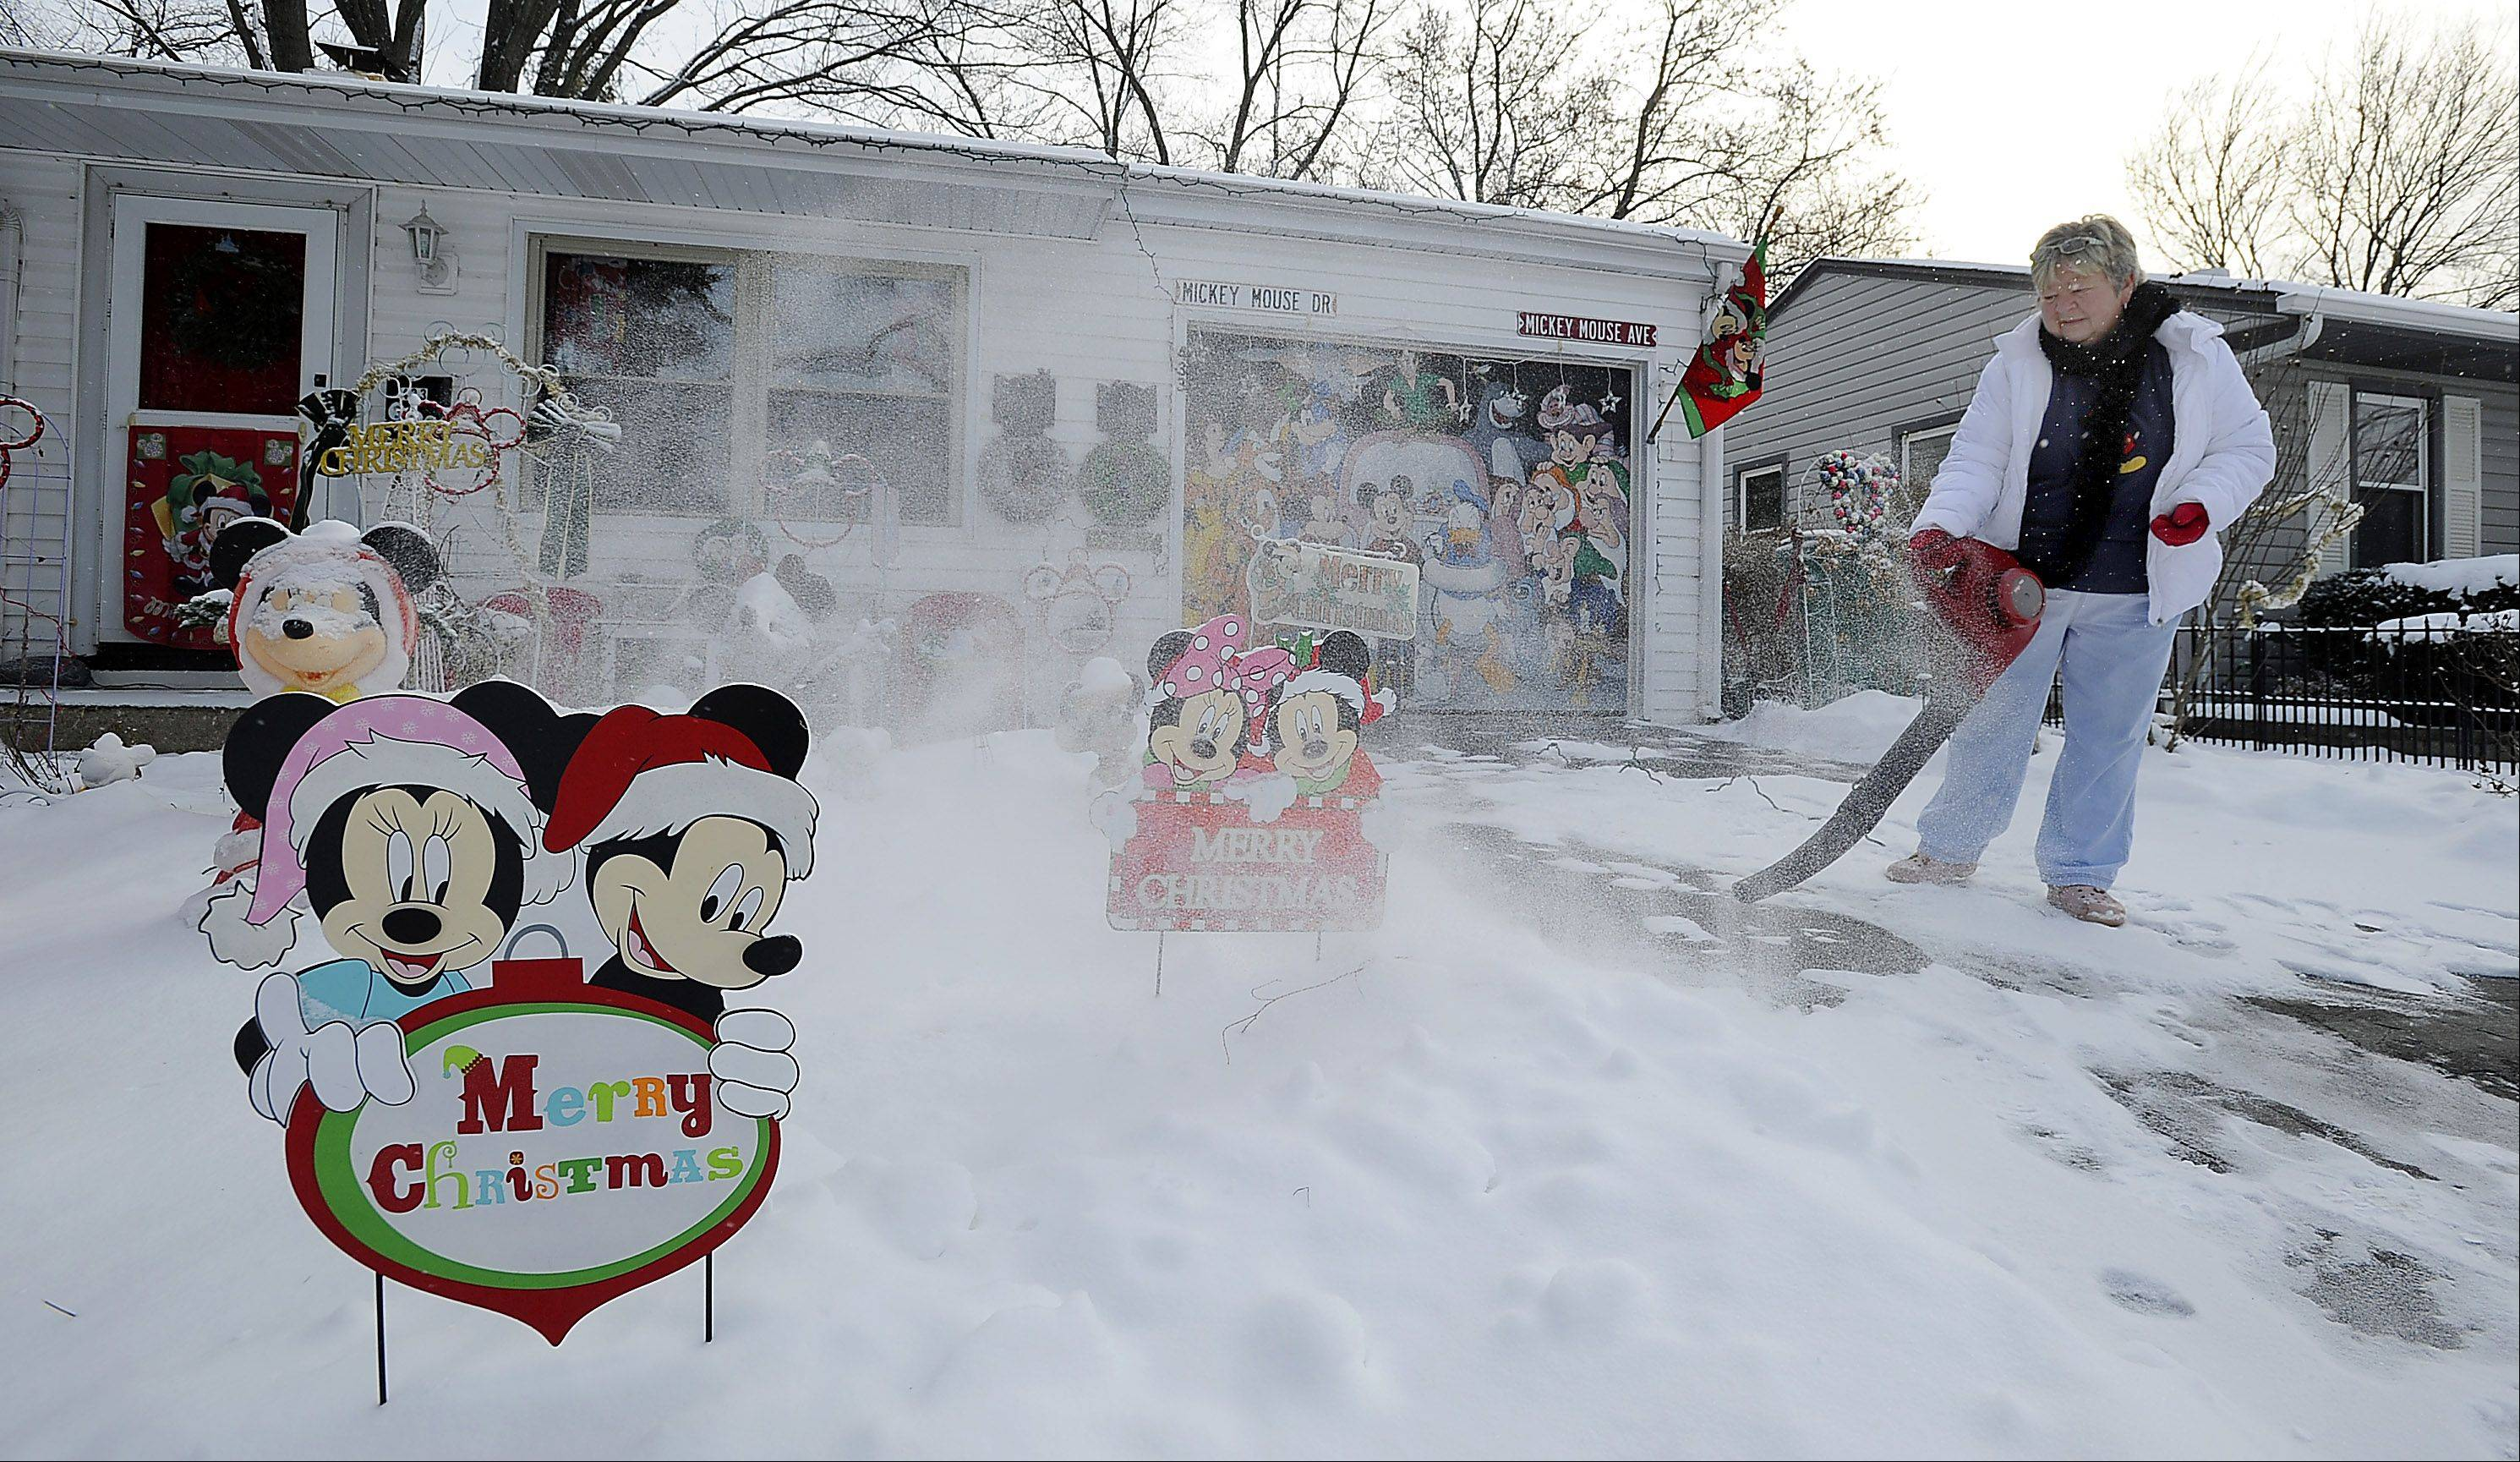 Teri Anderson, of Buffalo Grove, uses her leaf blower to clean off the fresh coating of snow that fell overnight as Walt Disney's characters keep her company.